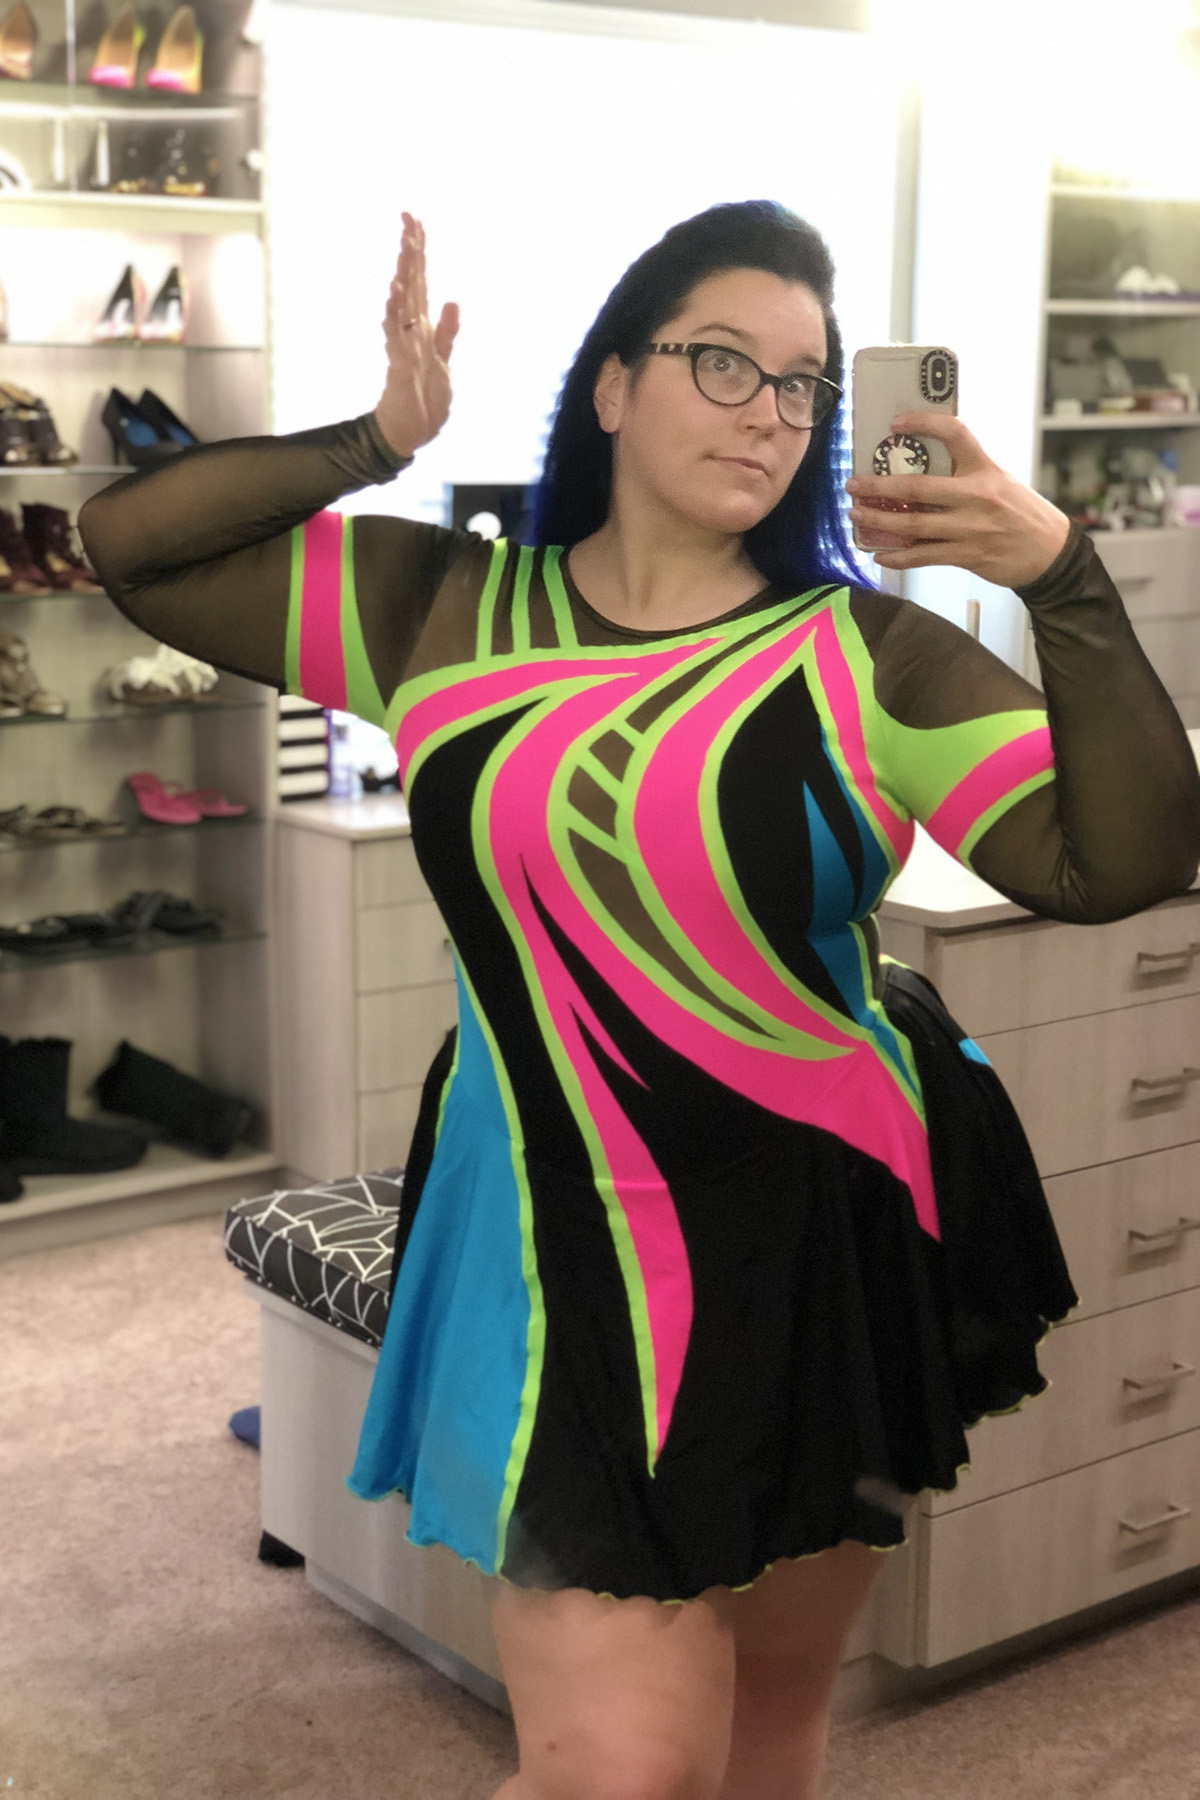 A gorgeous woman with black and blue hair and glasses takes a selfie wearing the 80's themed skating dress.